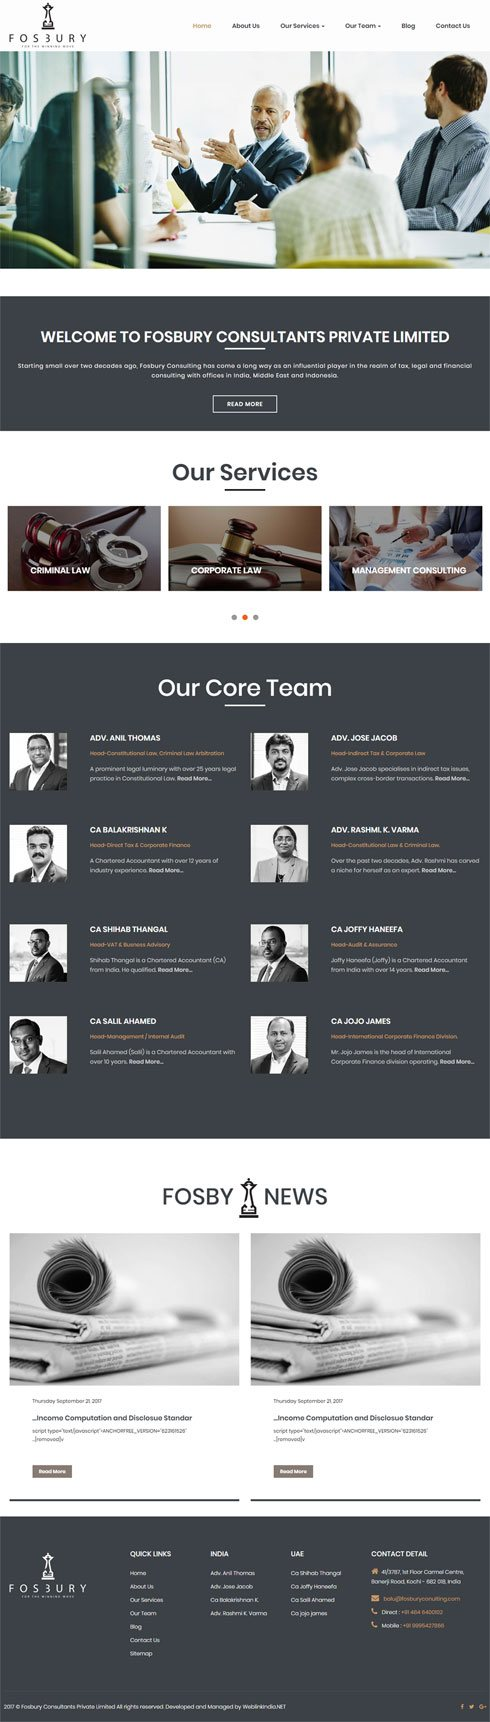 Fosbury Consultants India Web Design